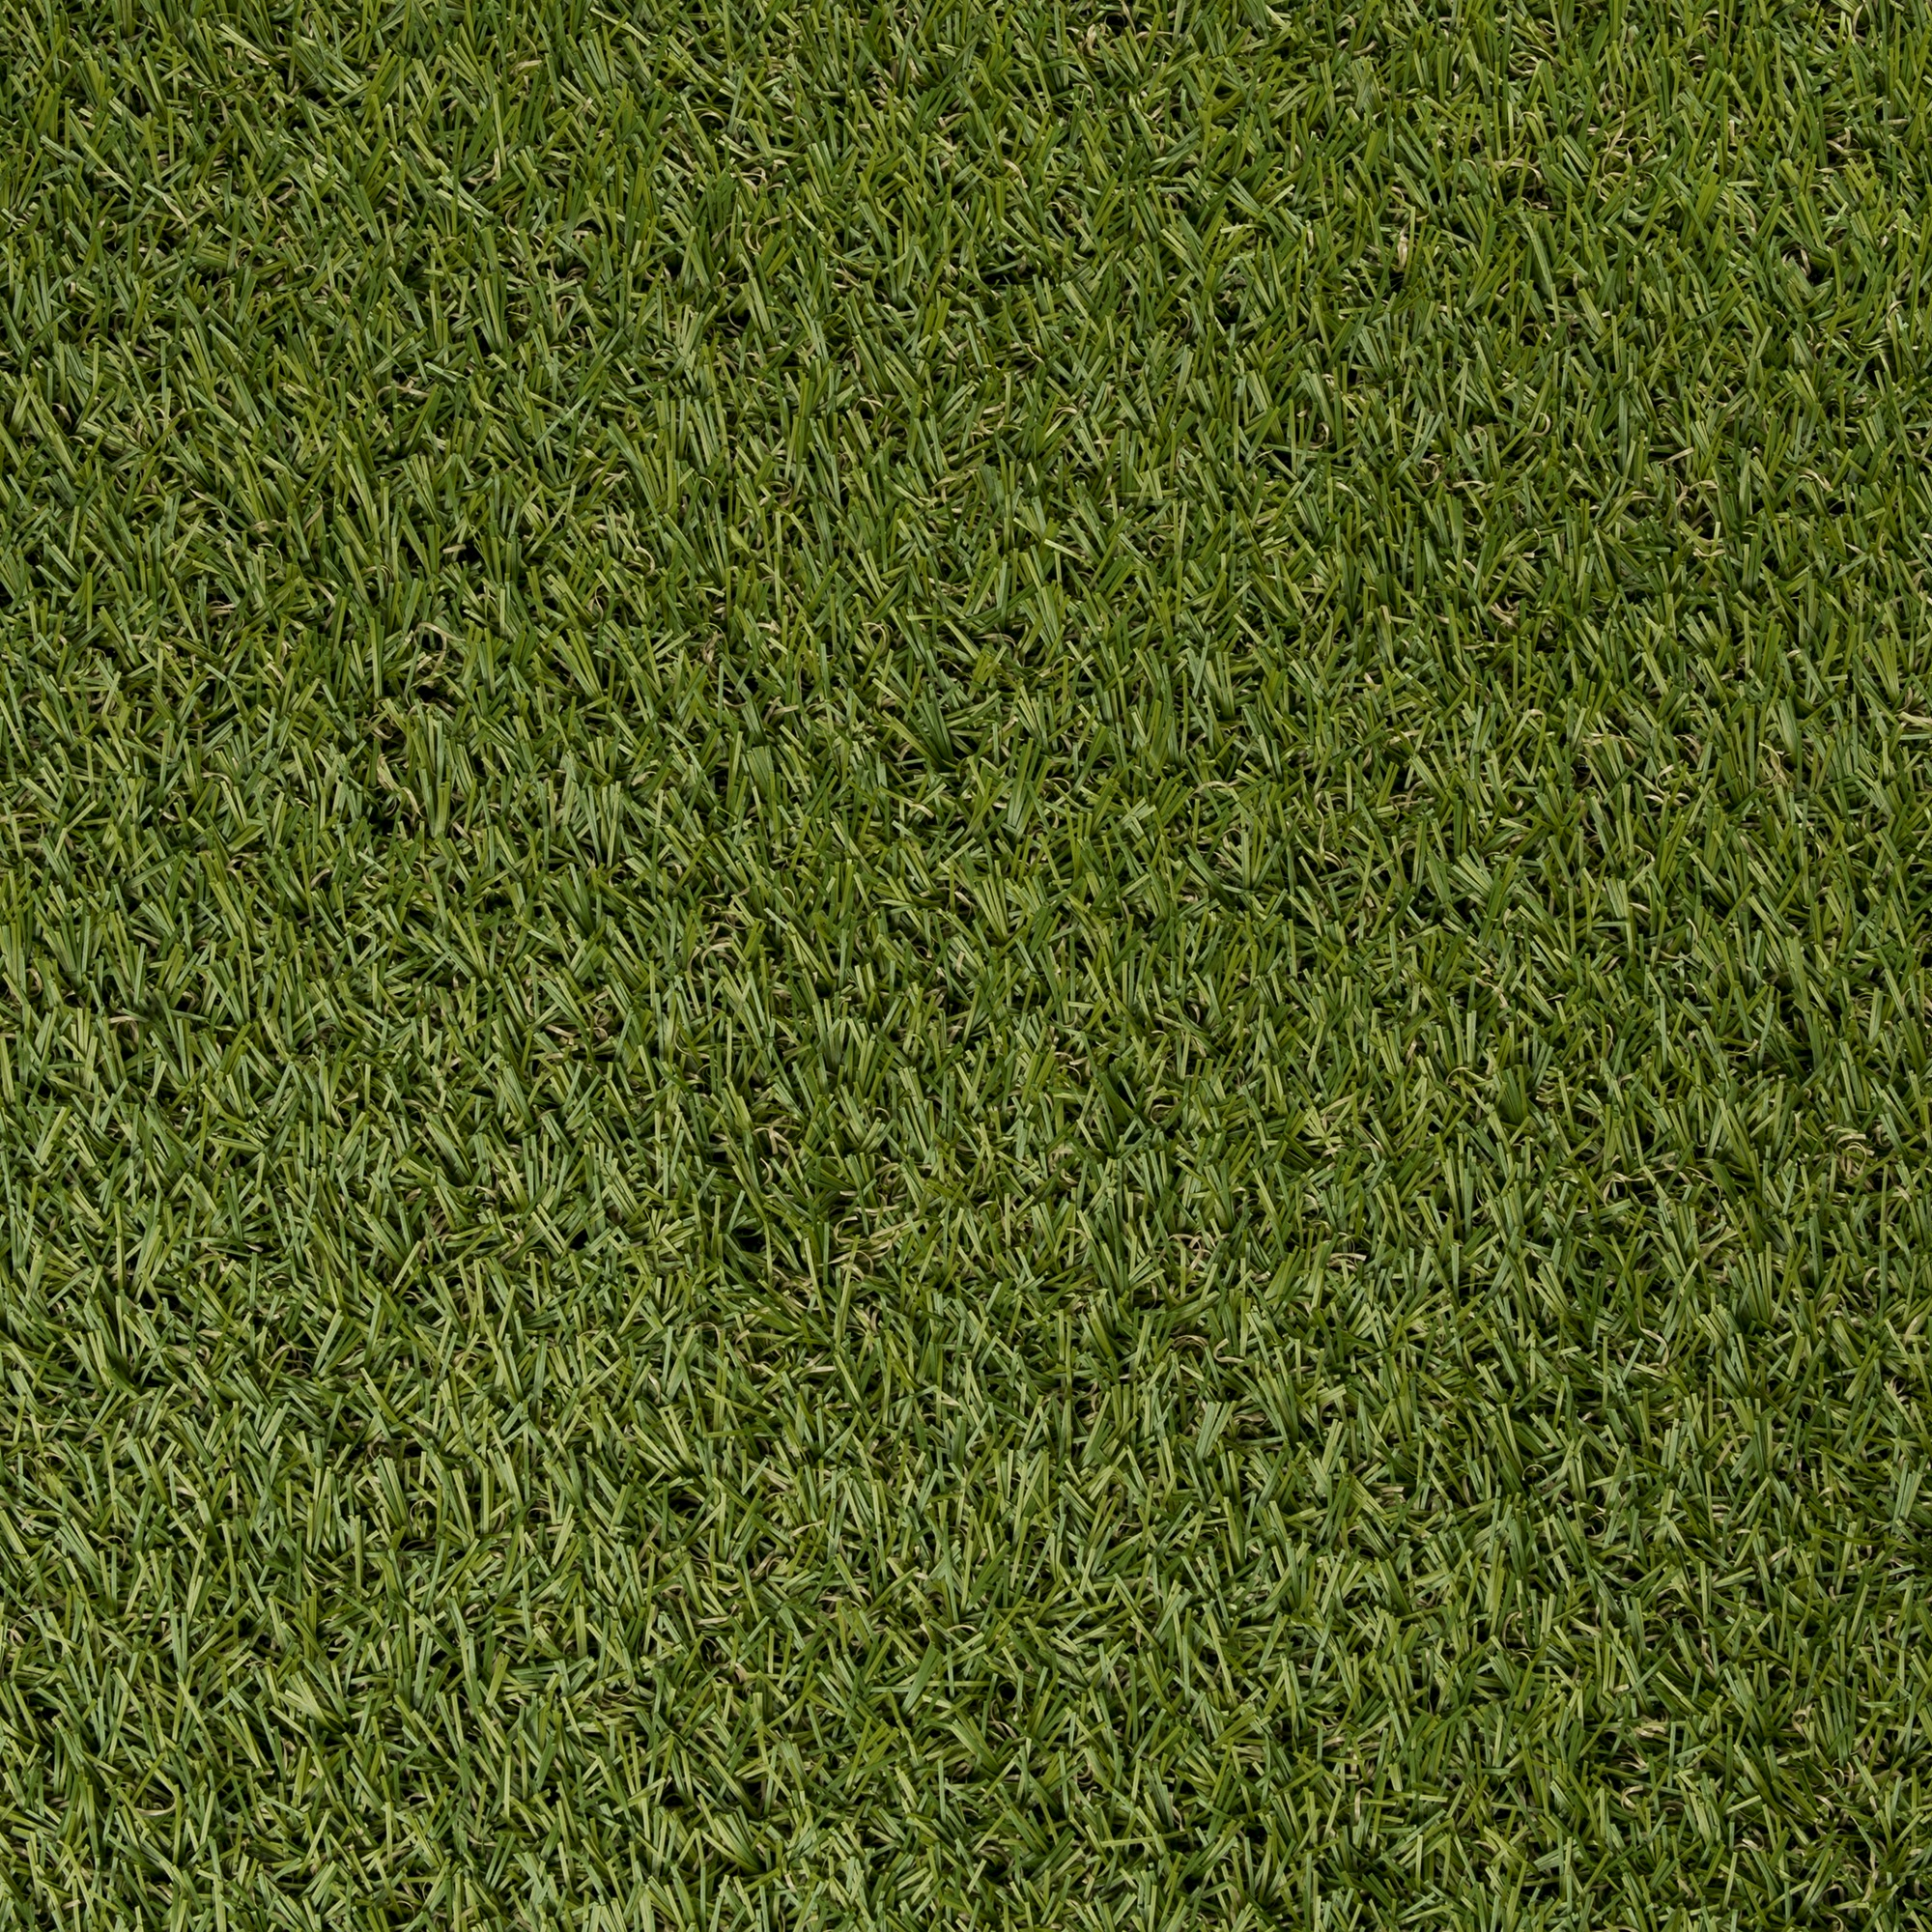 Gazon Synthétique Action Gazon Artificiel Selectgrass 200x300 Cm Gazon